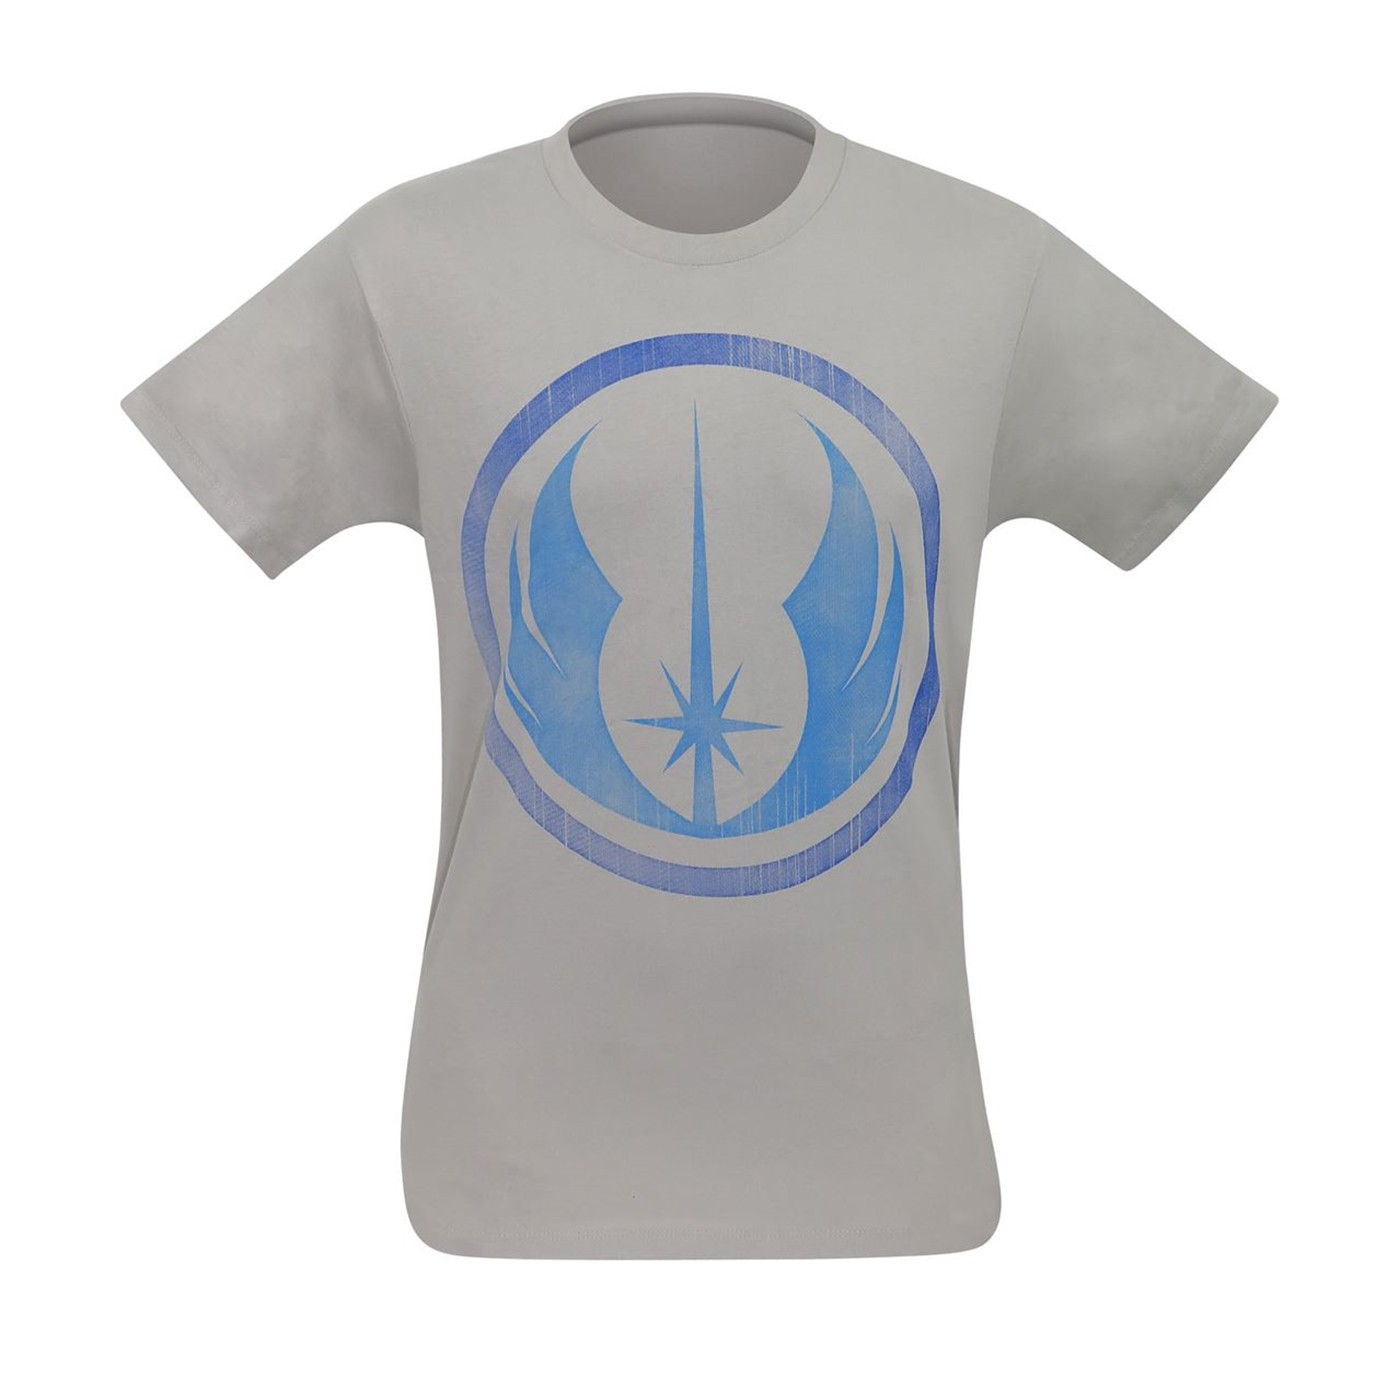 Star Wars Jedi Worn Symbol 30 Single T-Shirt